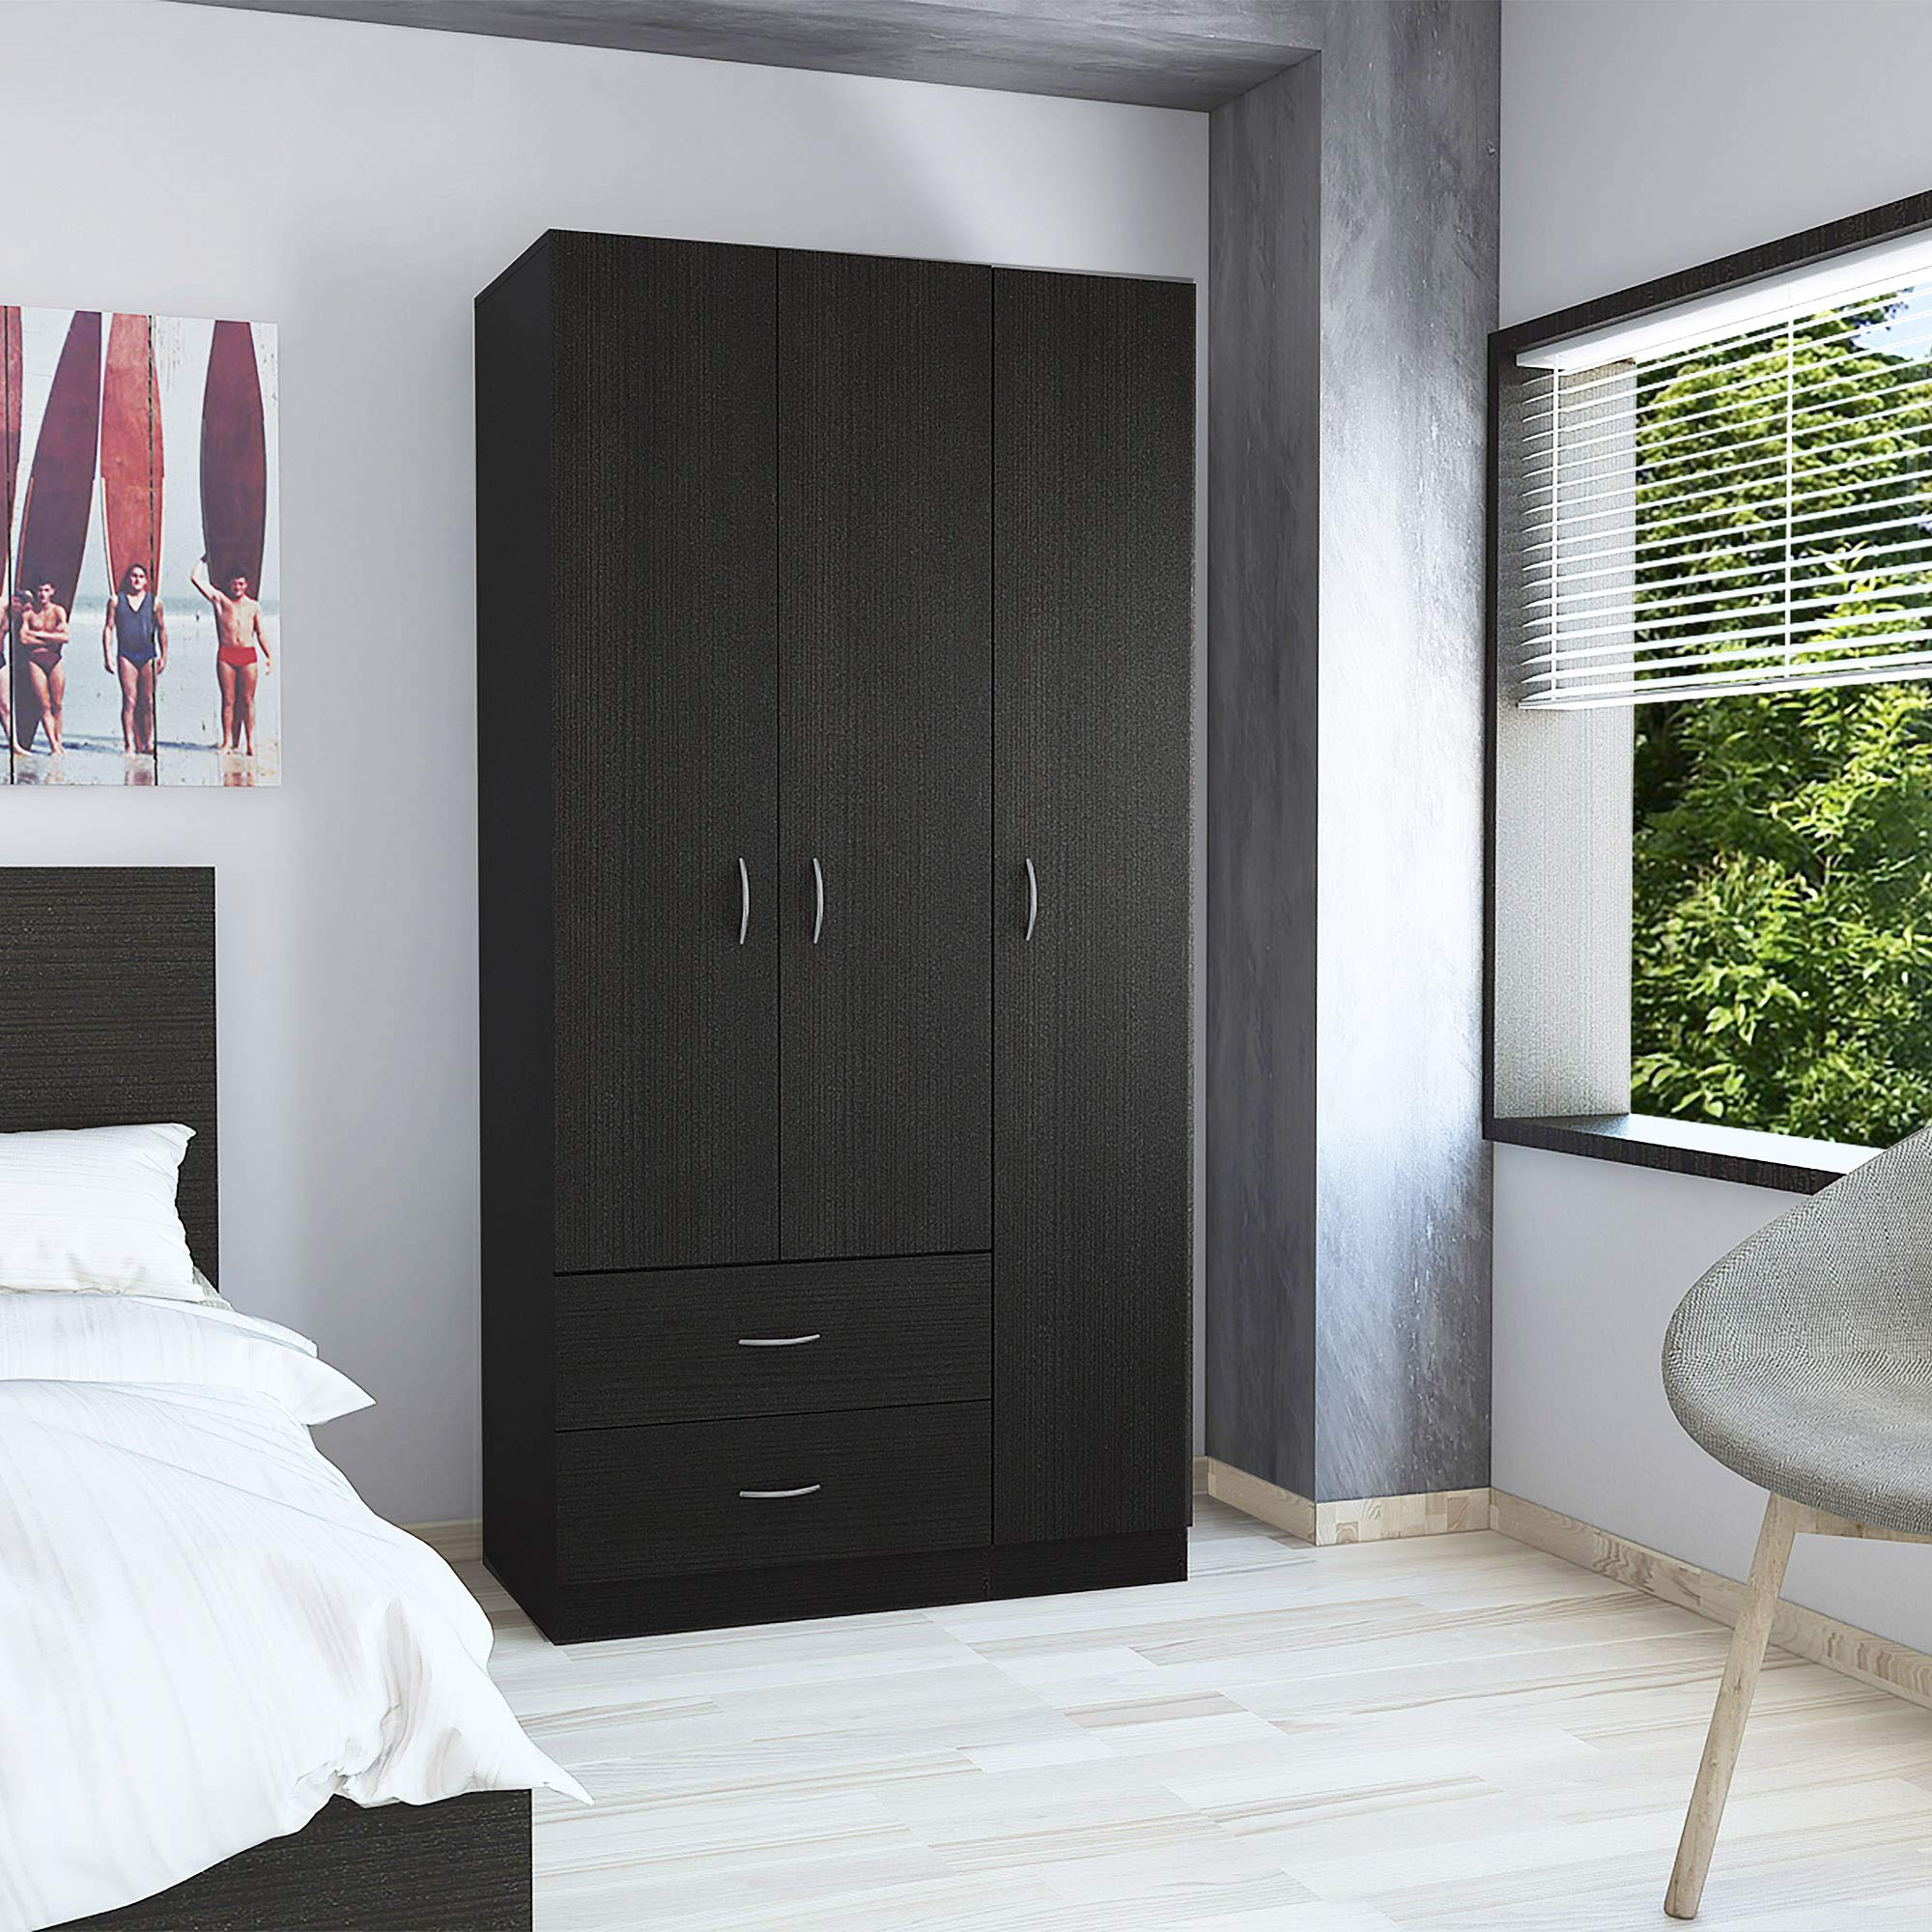 Tuhome Furniture Austral 3 Door Armoire Black by Tuhome Furniture